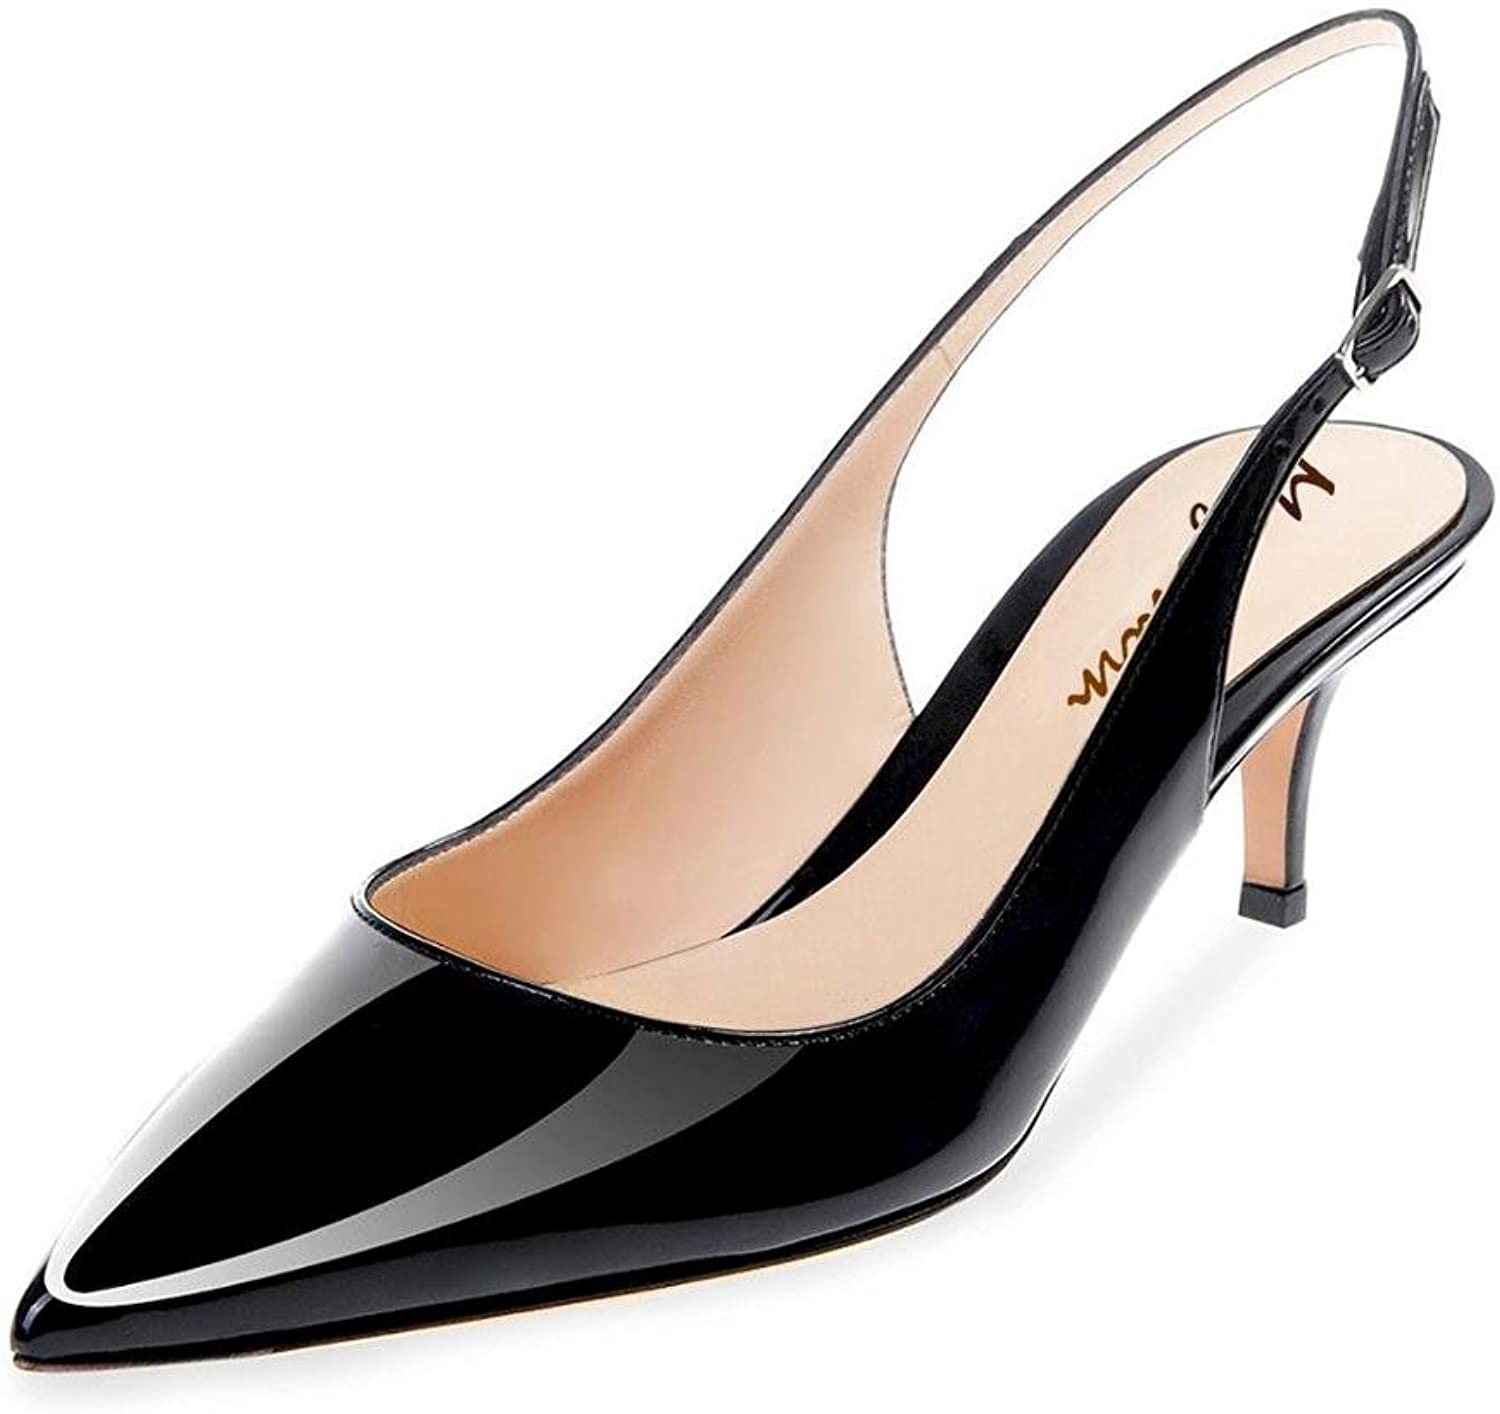 Maguidern Patent Leather Slingback Pumps, Women's Pointed Toe Slingbacks Buckle Ankle Strap Low Heel shoes Black Size 9